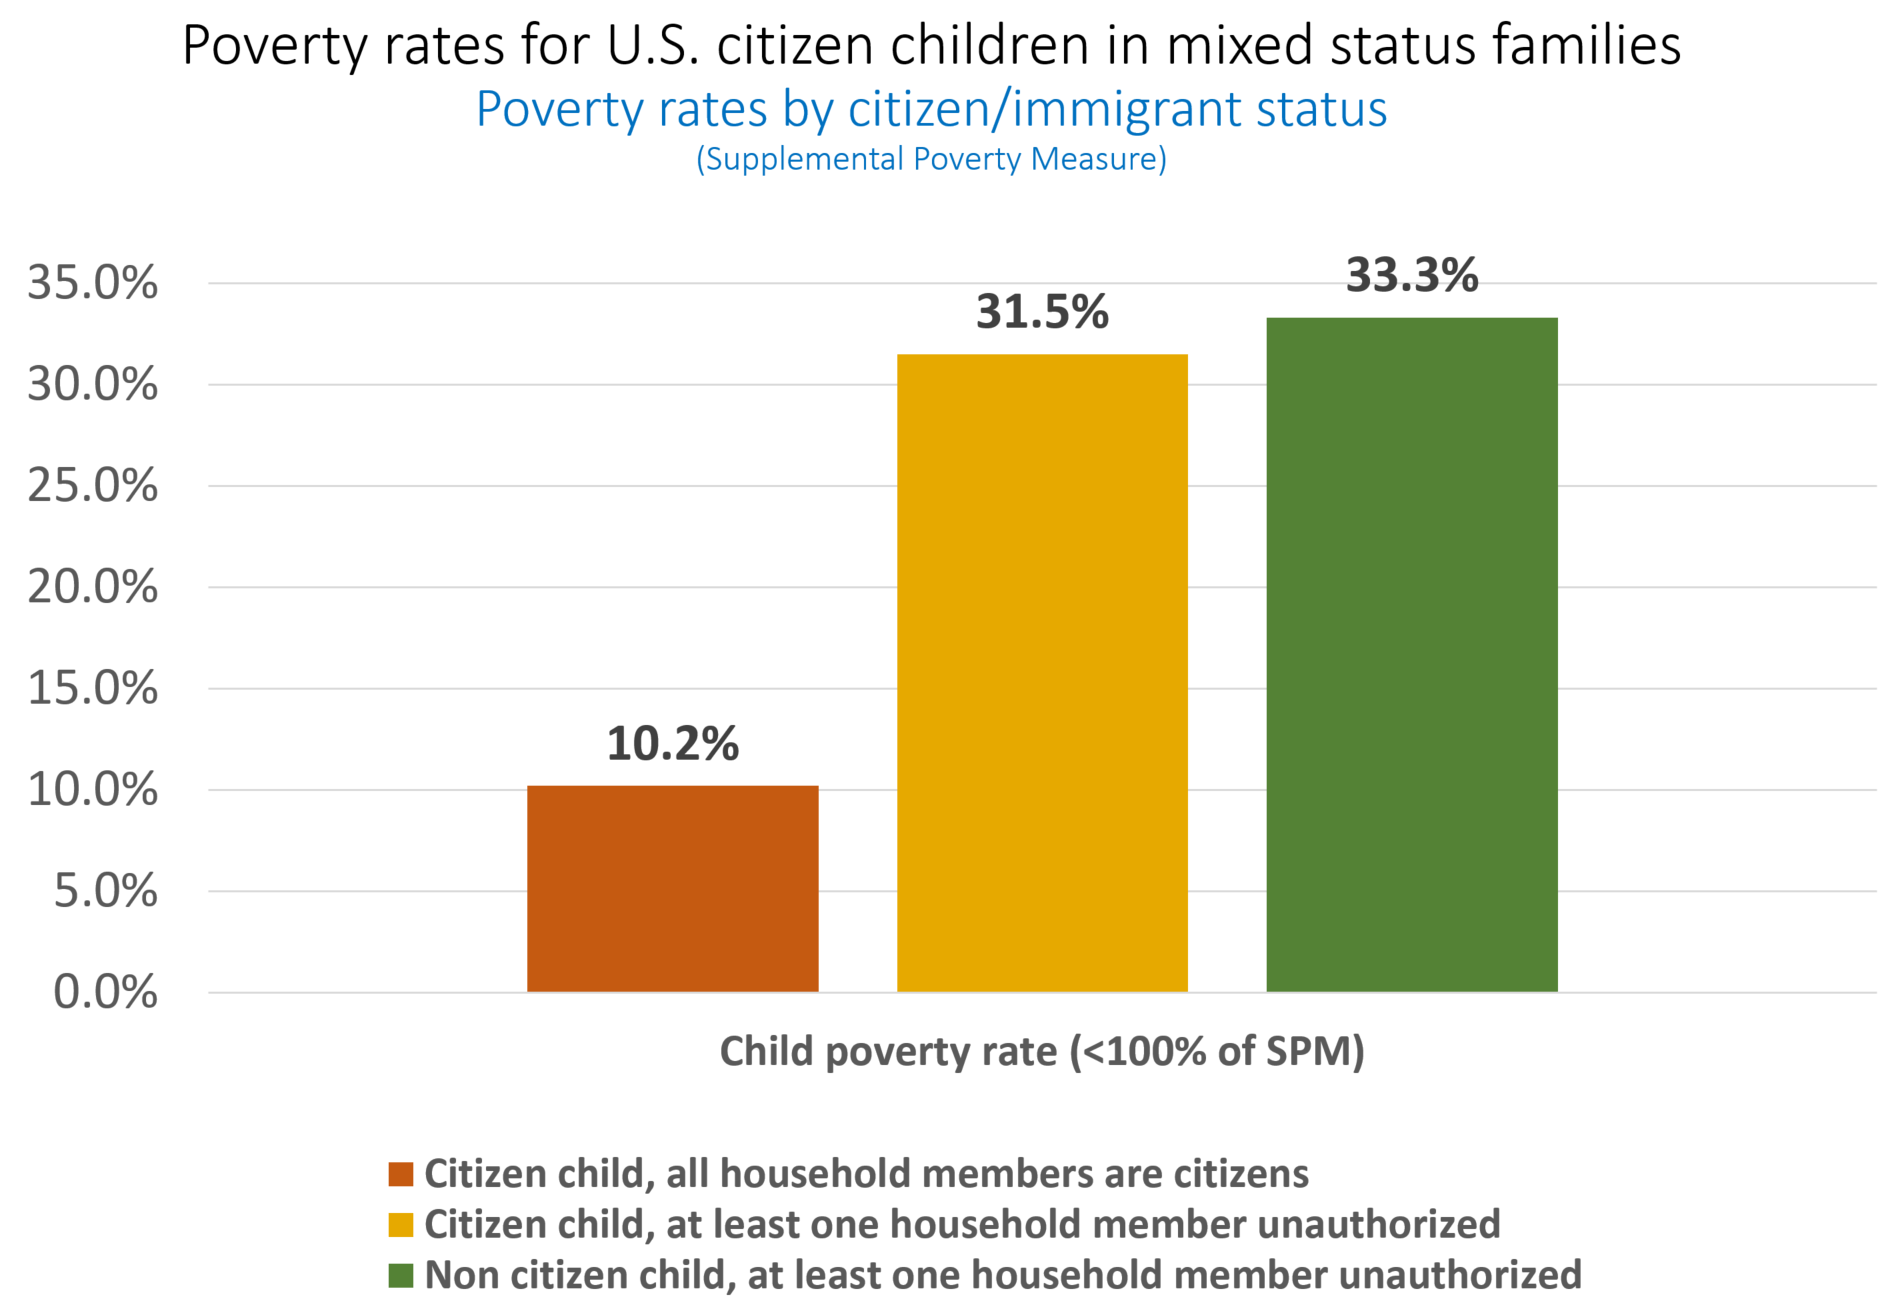 Graph showing poverty levels for U.S. citizen children in mixed status families